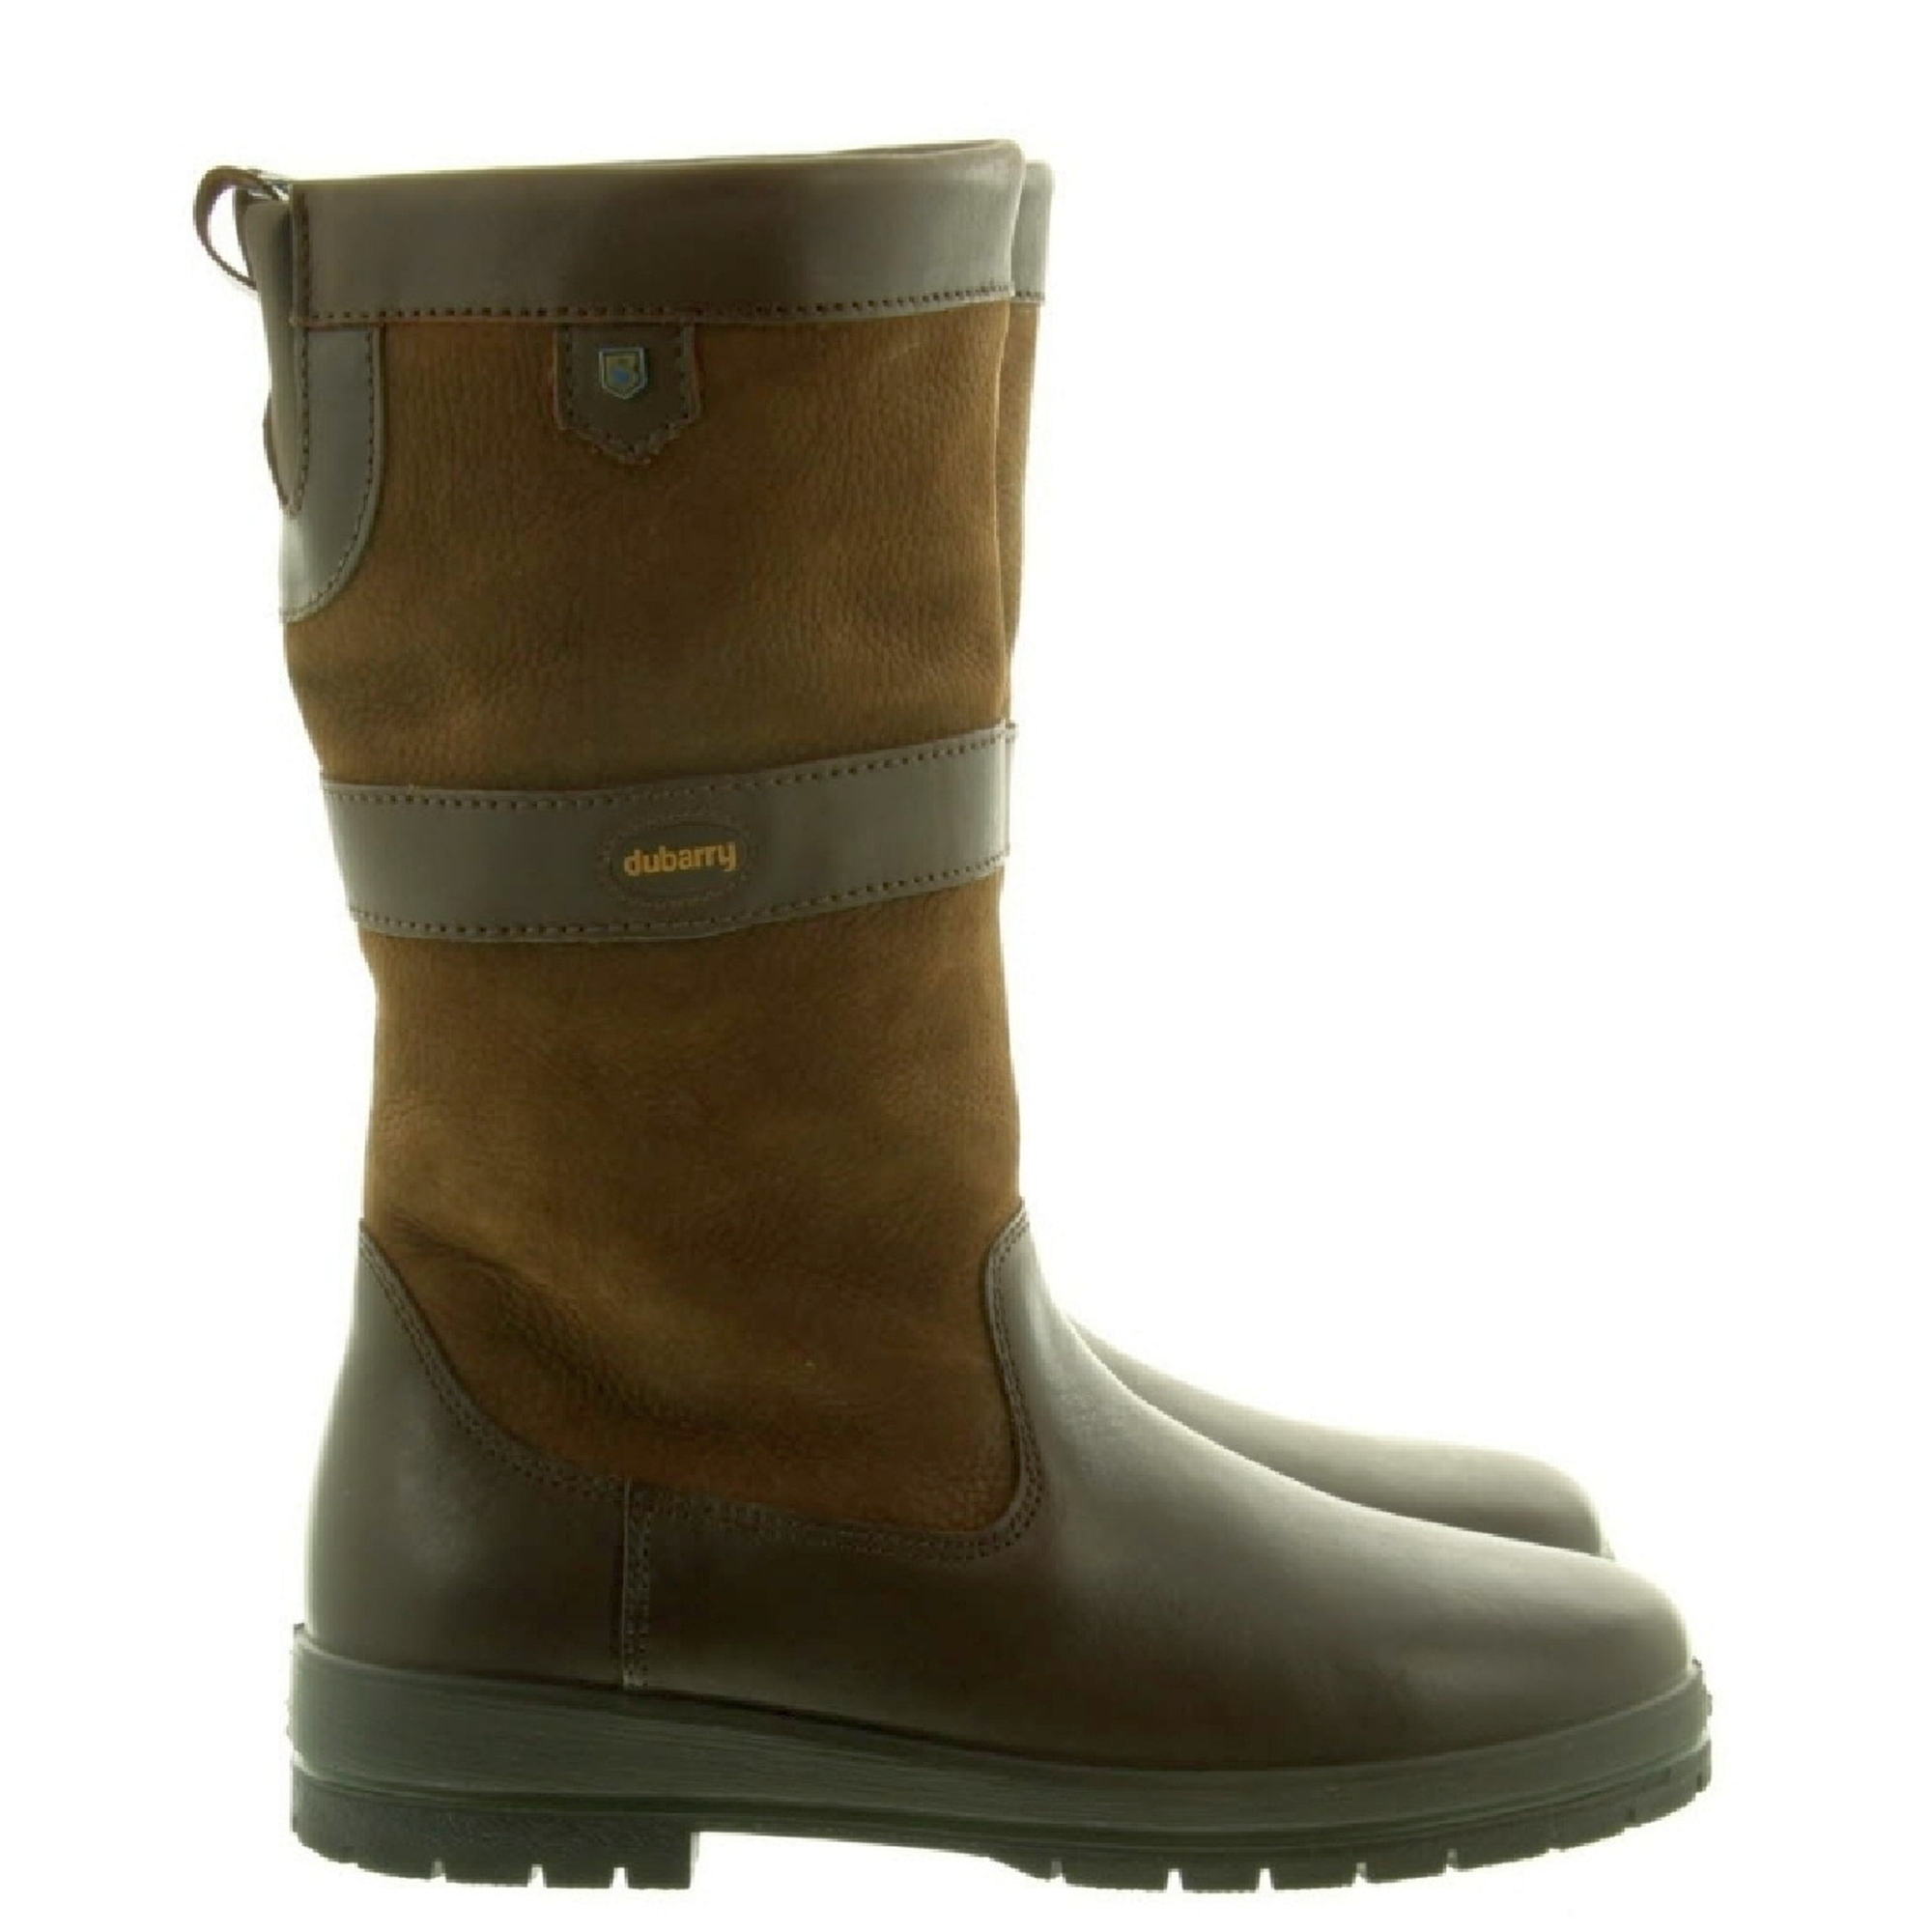 Dubarry Kildare 3892 Lady 52 Walnut